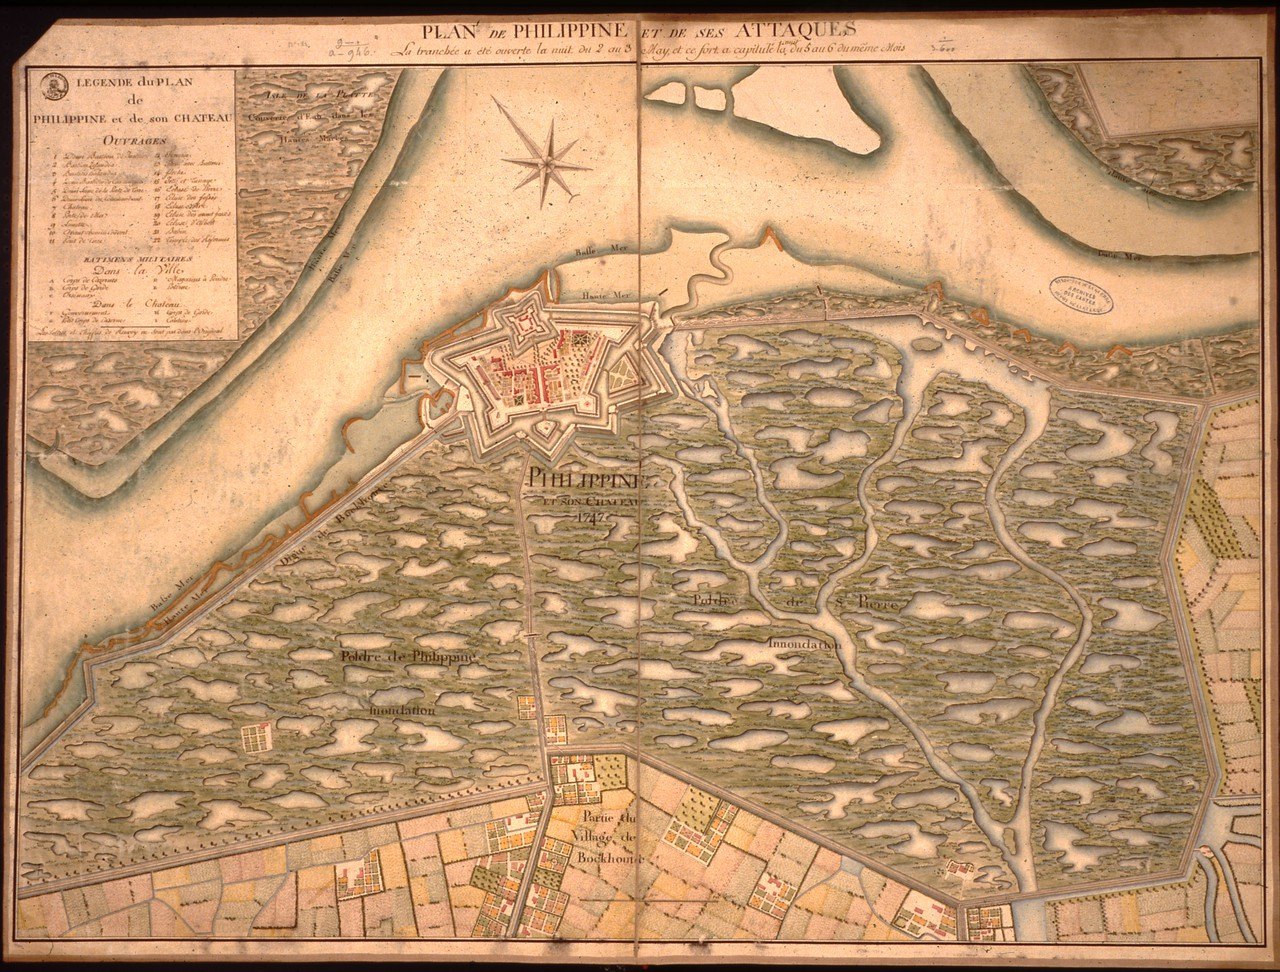 Map showing the strategic flooding of the Philippine area, southwestern Netherlands, in 1747 at the time of a French military attack (Credit: Ministère de la Défense (France), Service Historique de la Défense)